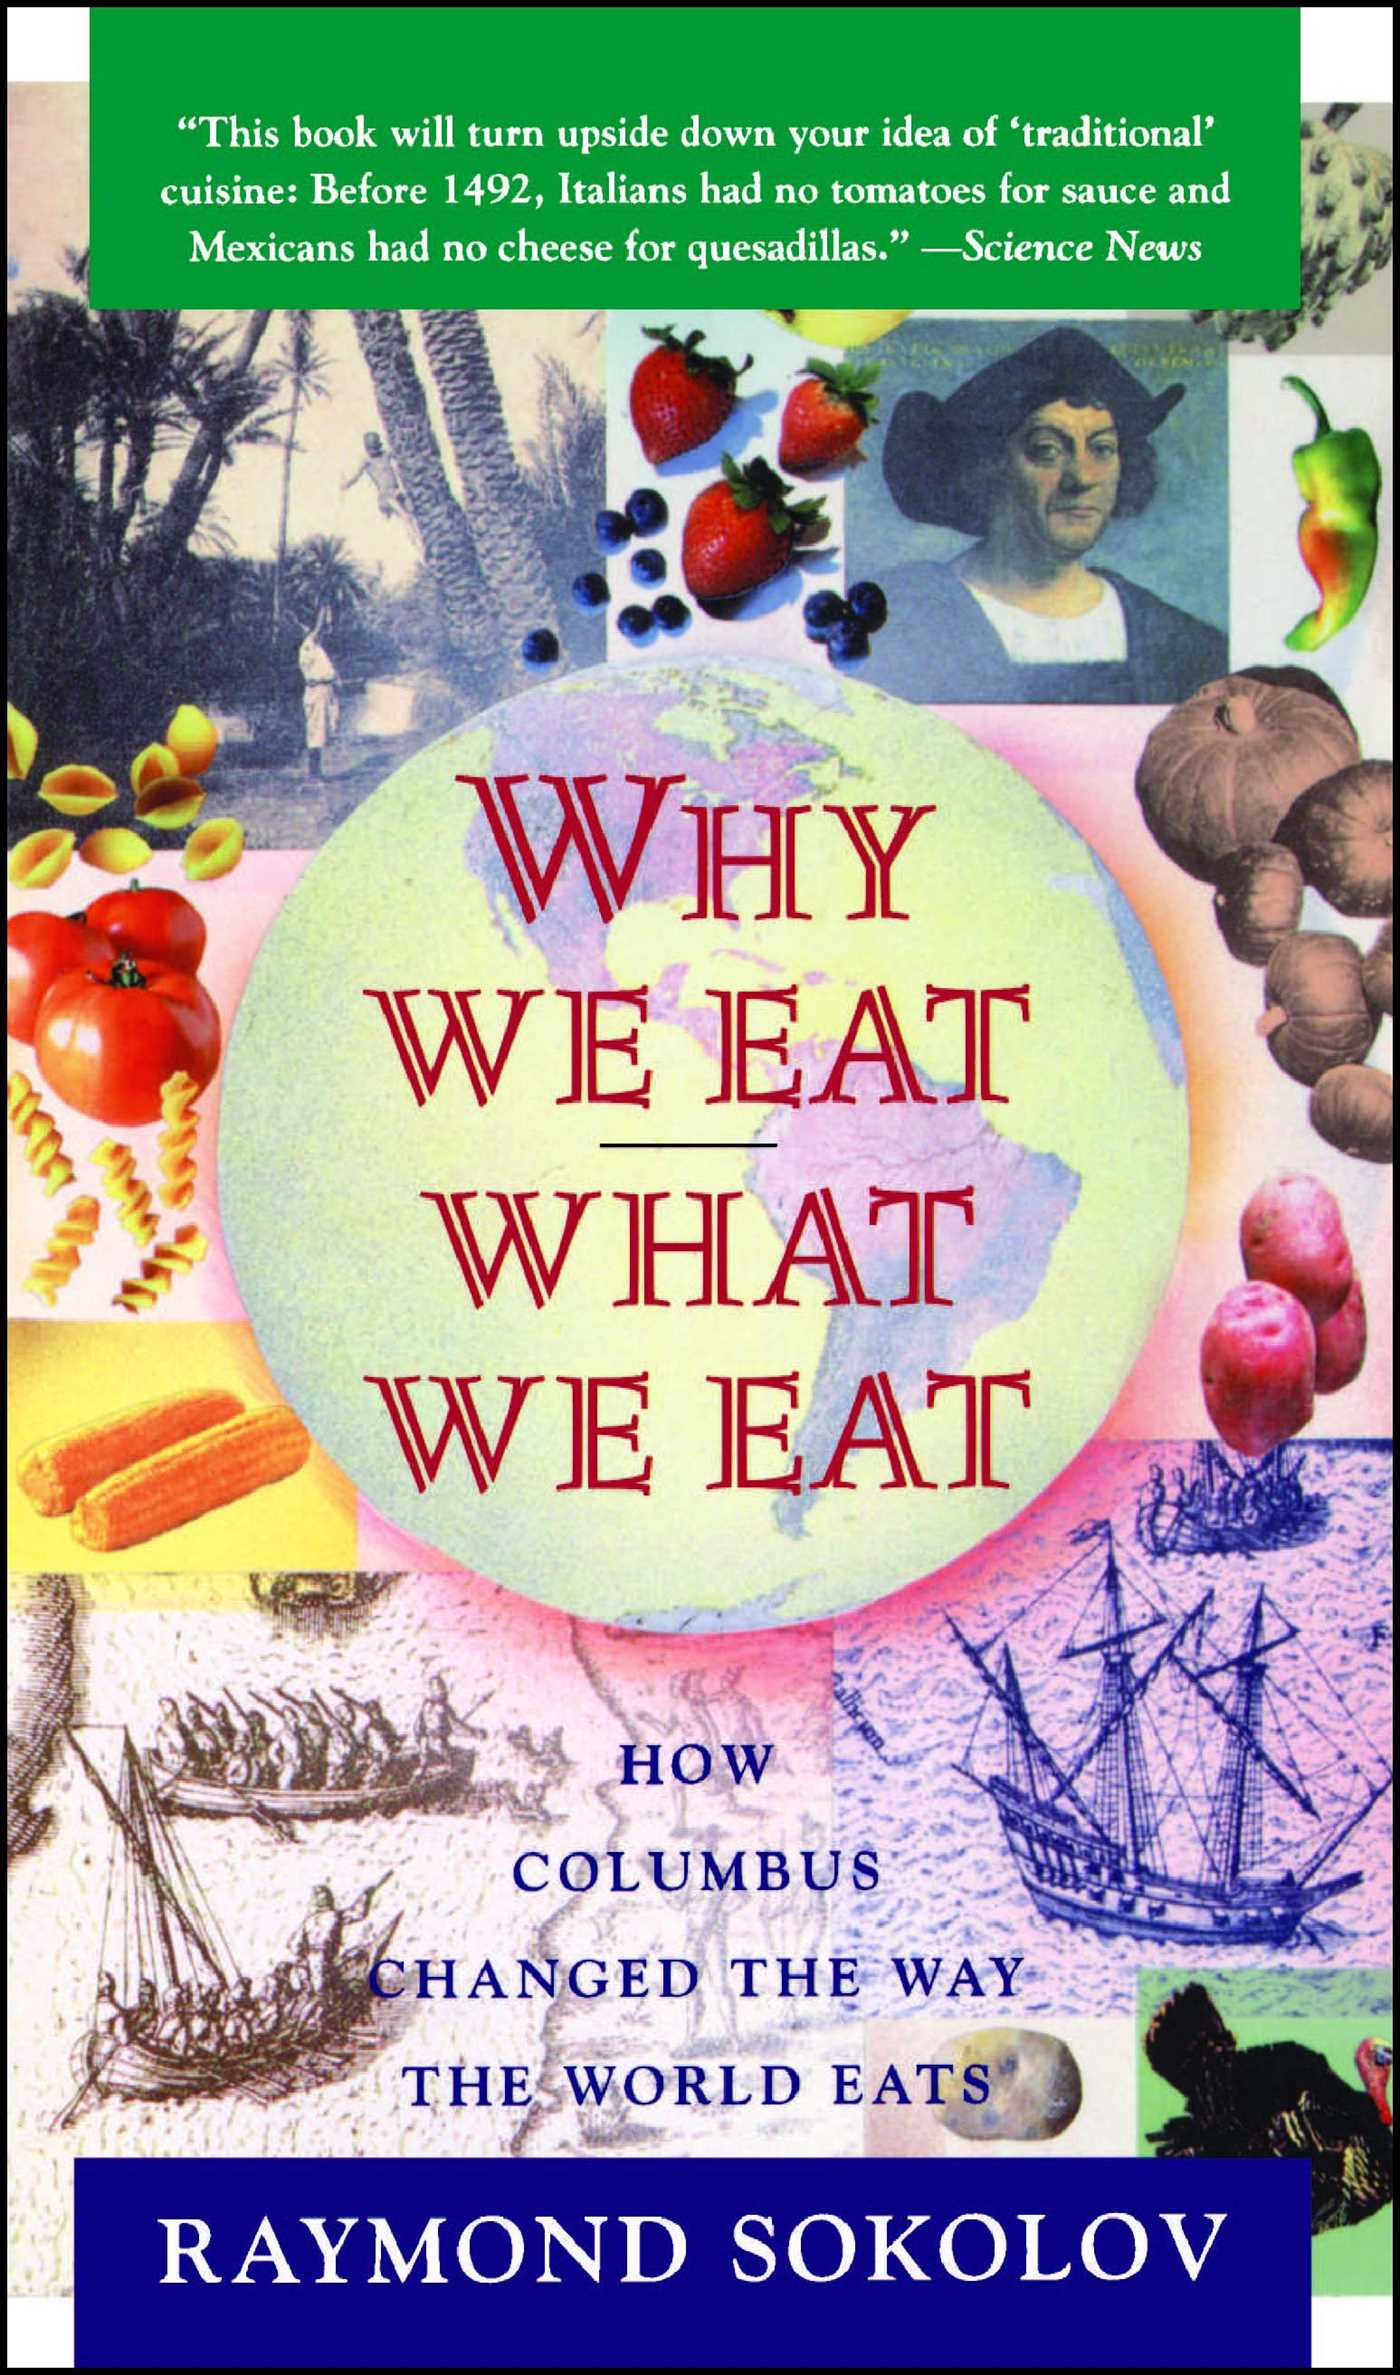 Why-we-eat-what-we-eat-9780671797911_hr